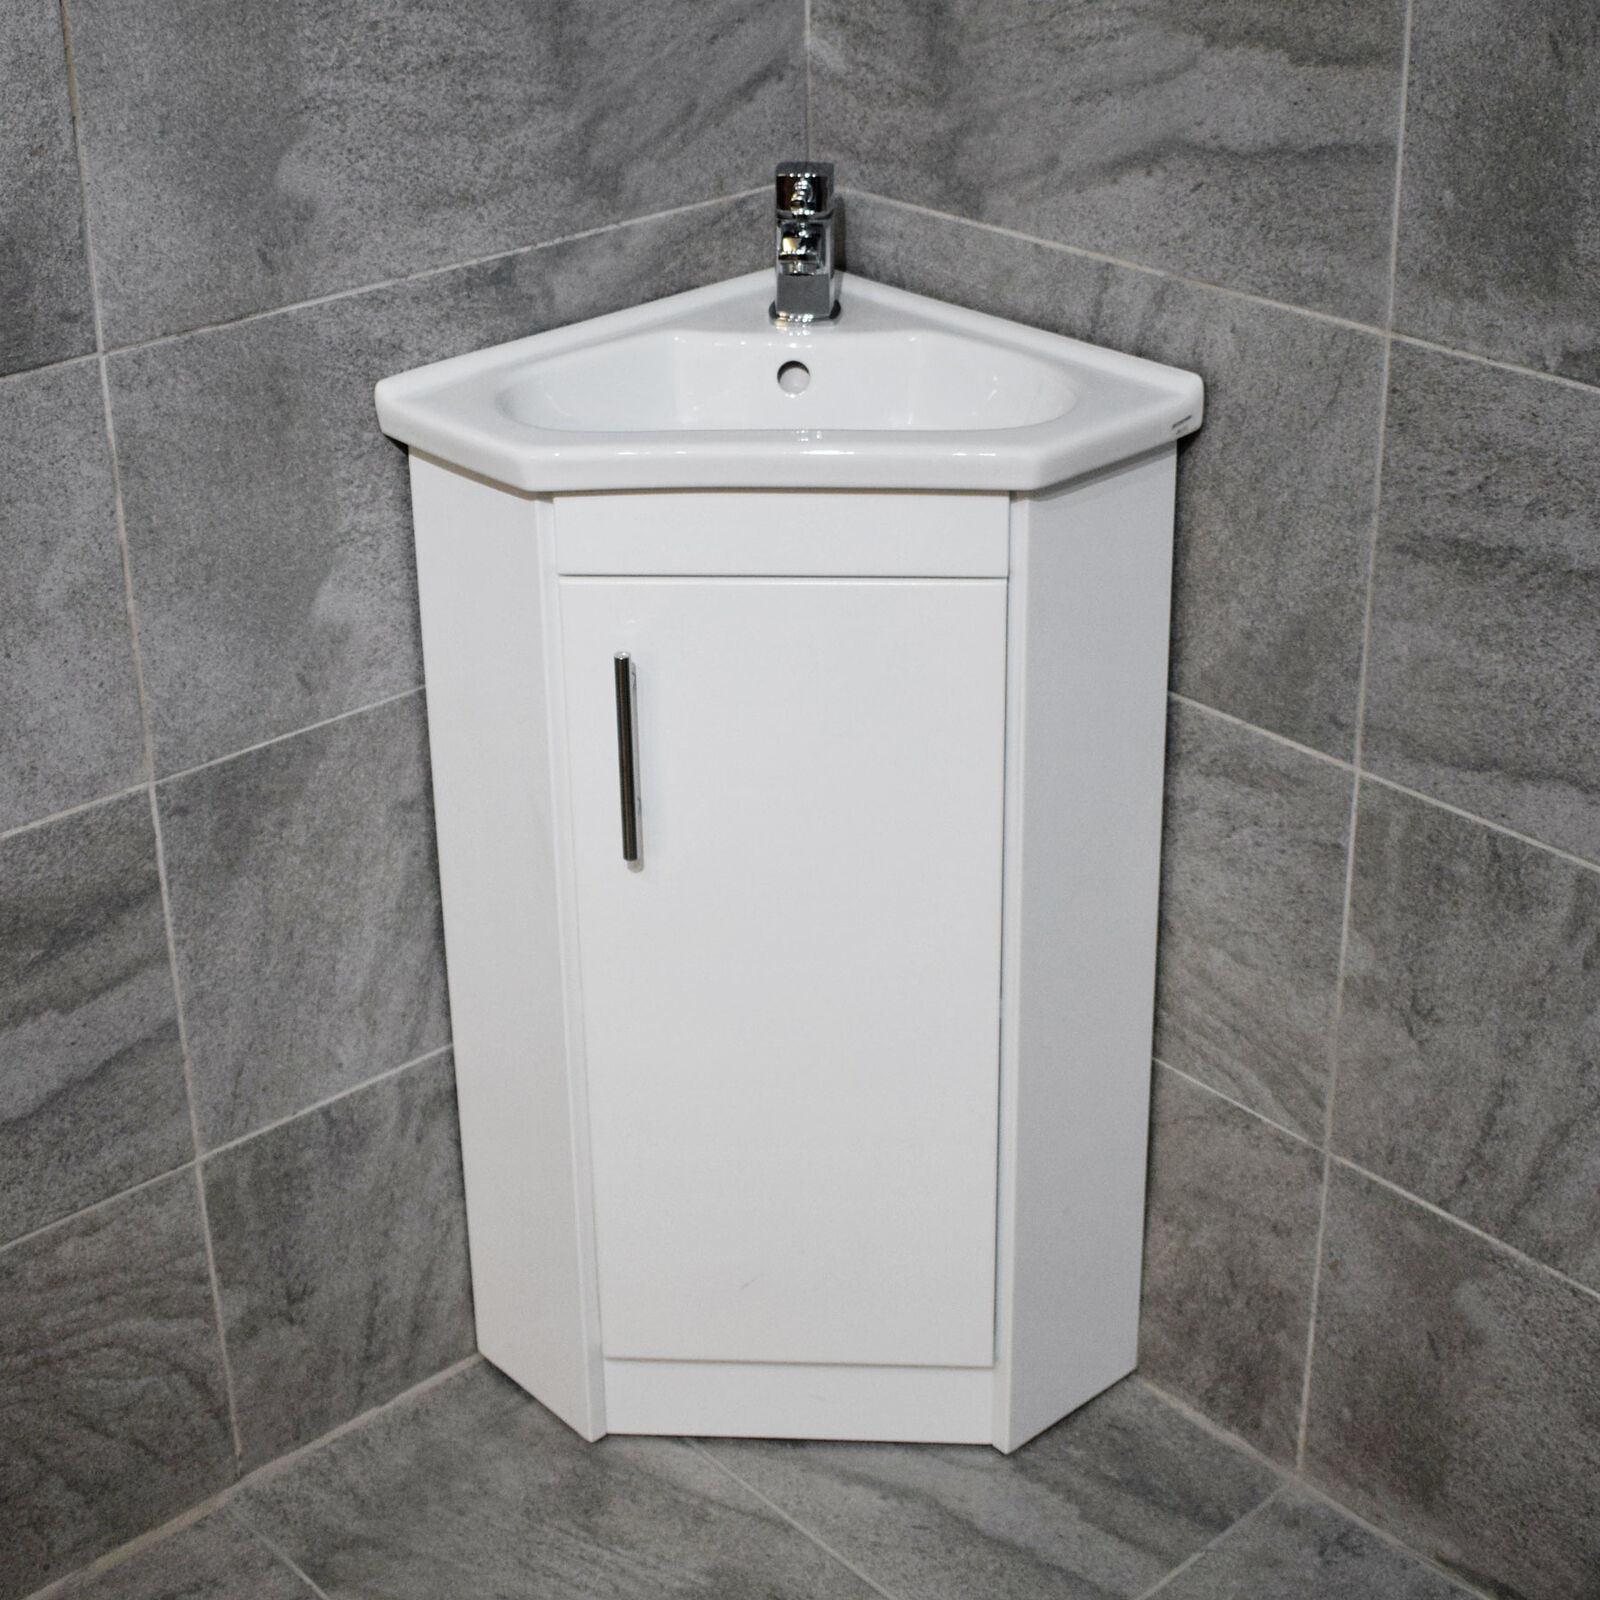 China Corner Vanity Unit Including Basin Sink White Gloss Cloakroom Unit China Corner Vanity Unit Bathroom Furniture